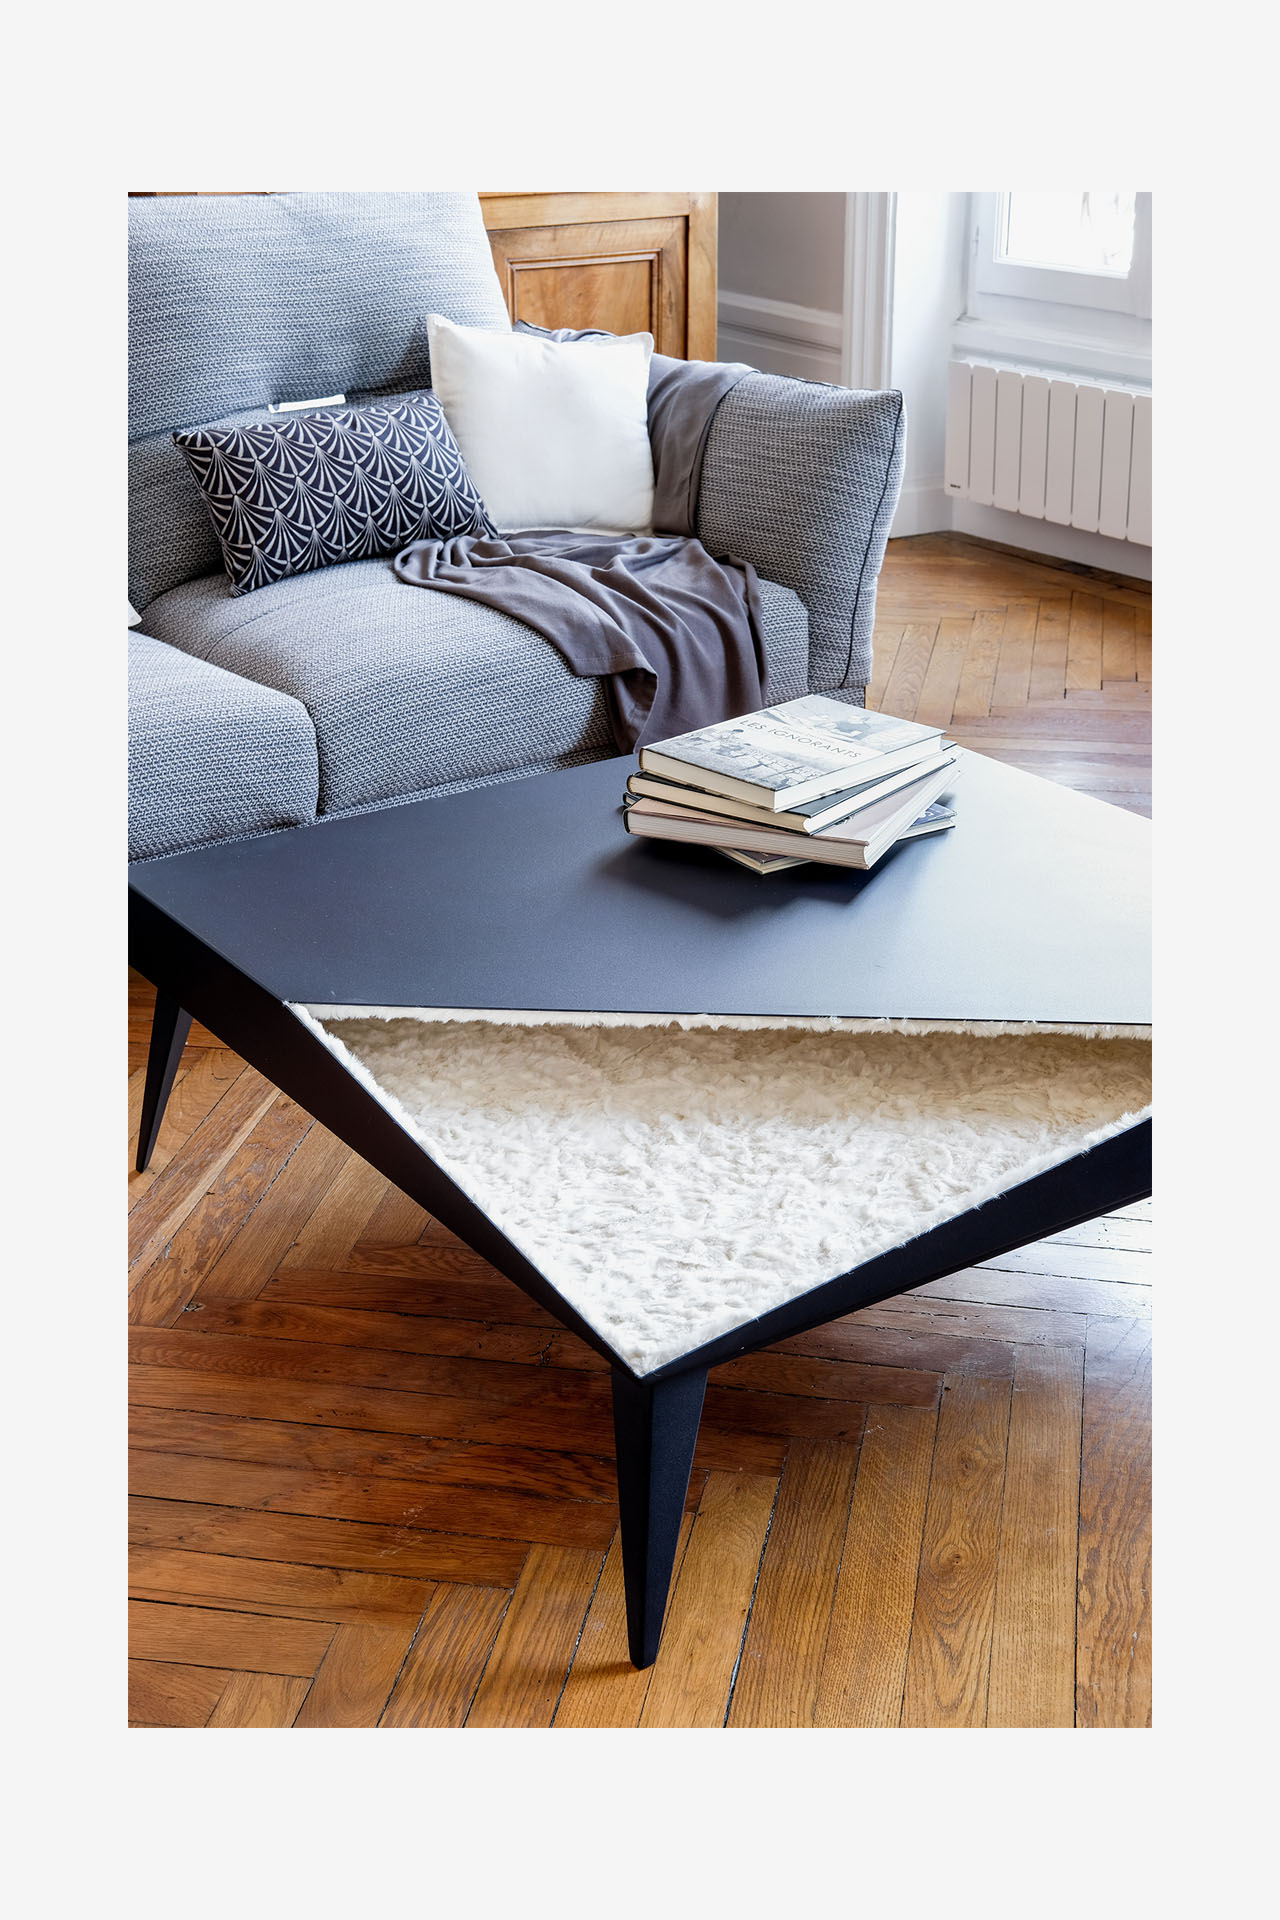 oxidee-table-basse-martiniere-12B